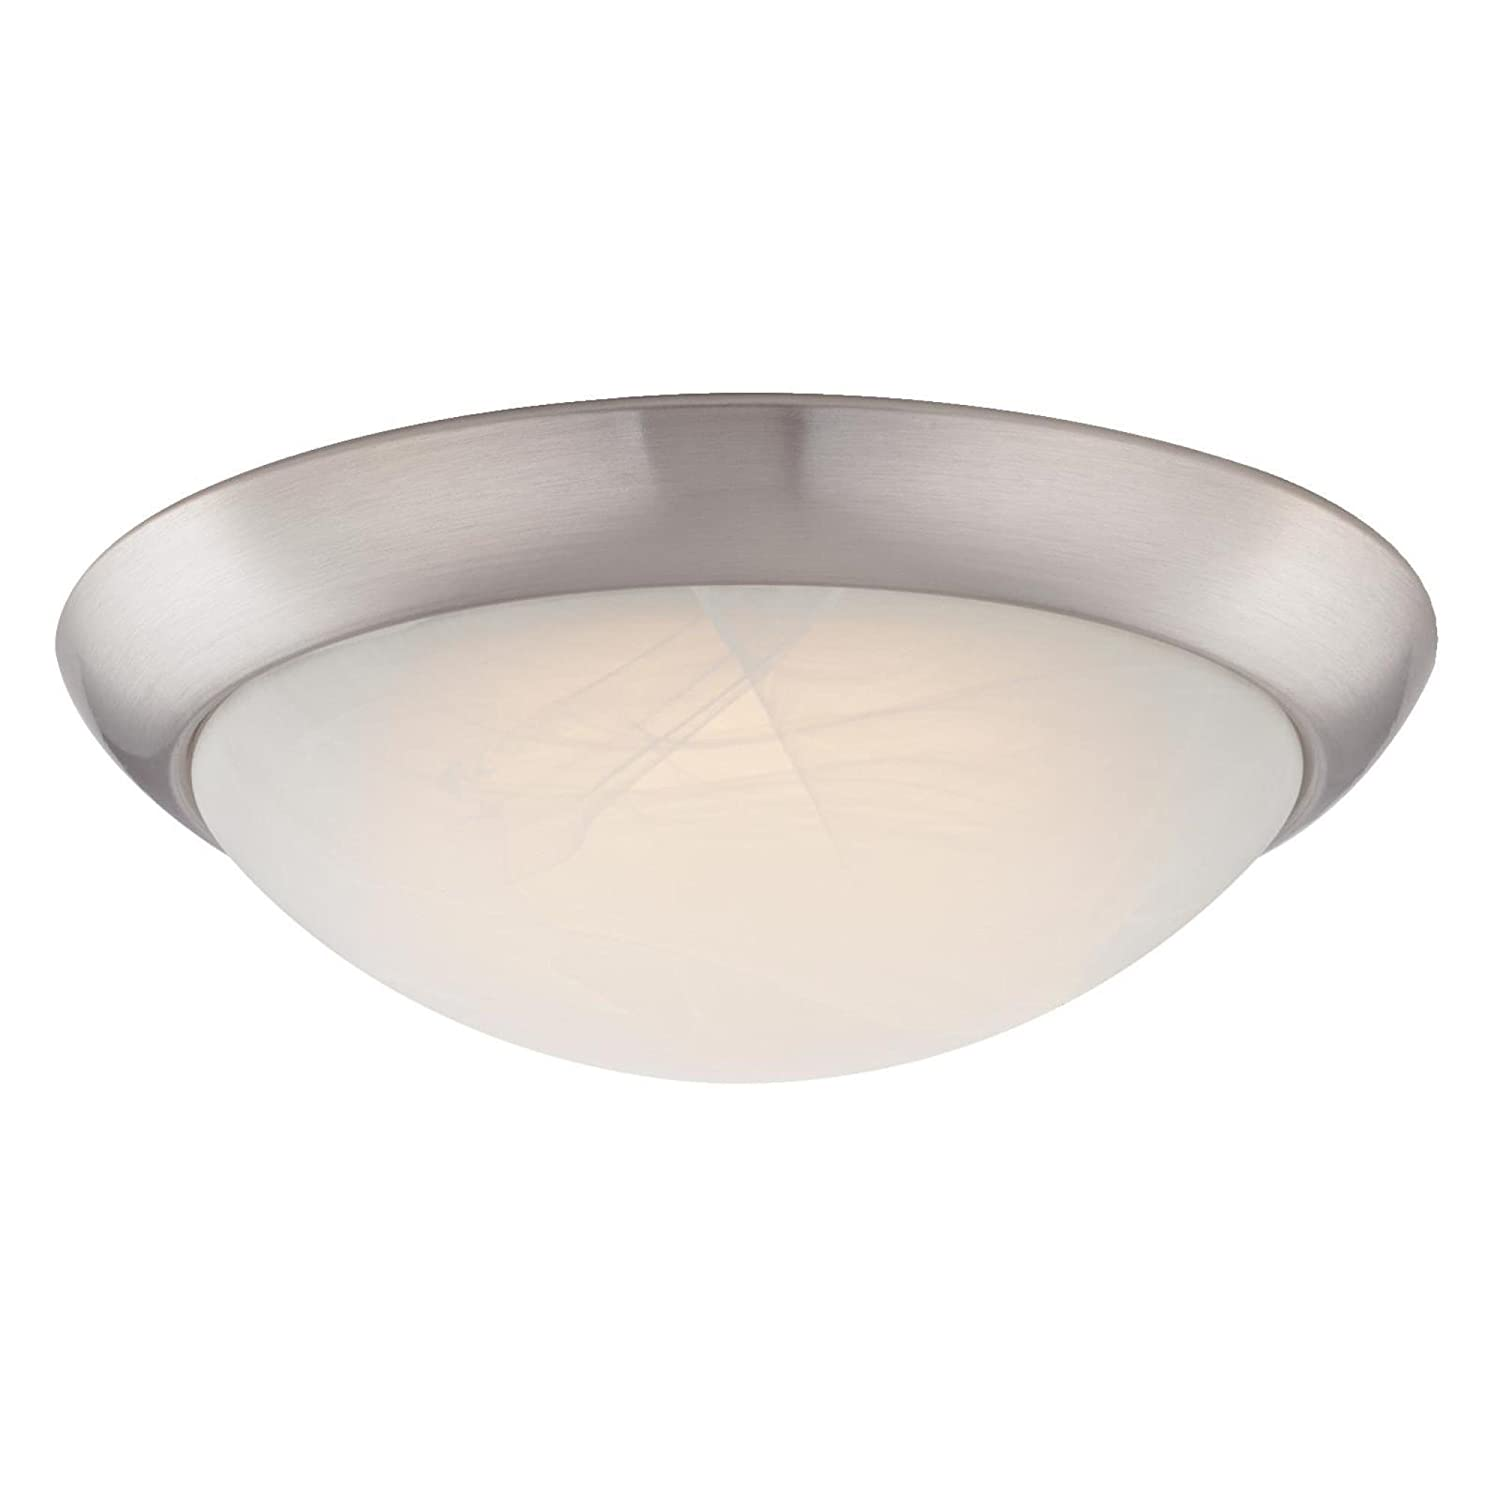 6308800 11-Inch LED Indoor Flush Mount Ceiling Fixture, Brushed ...